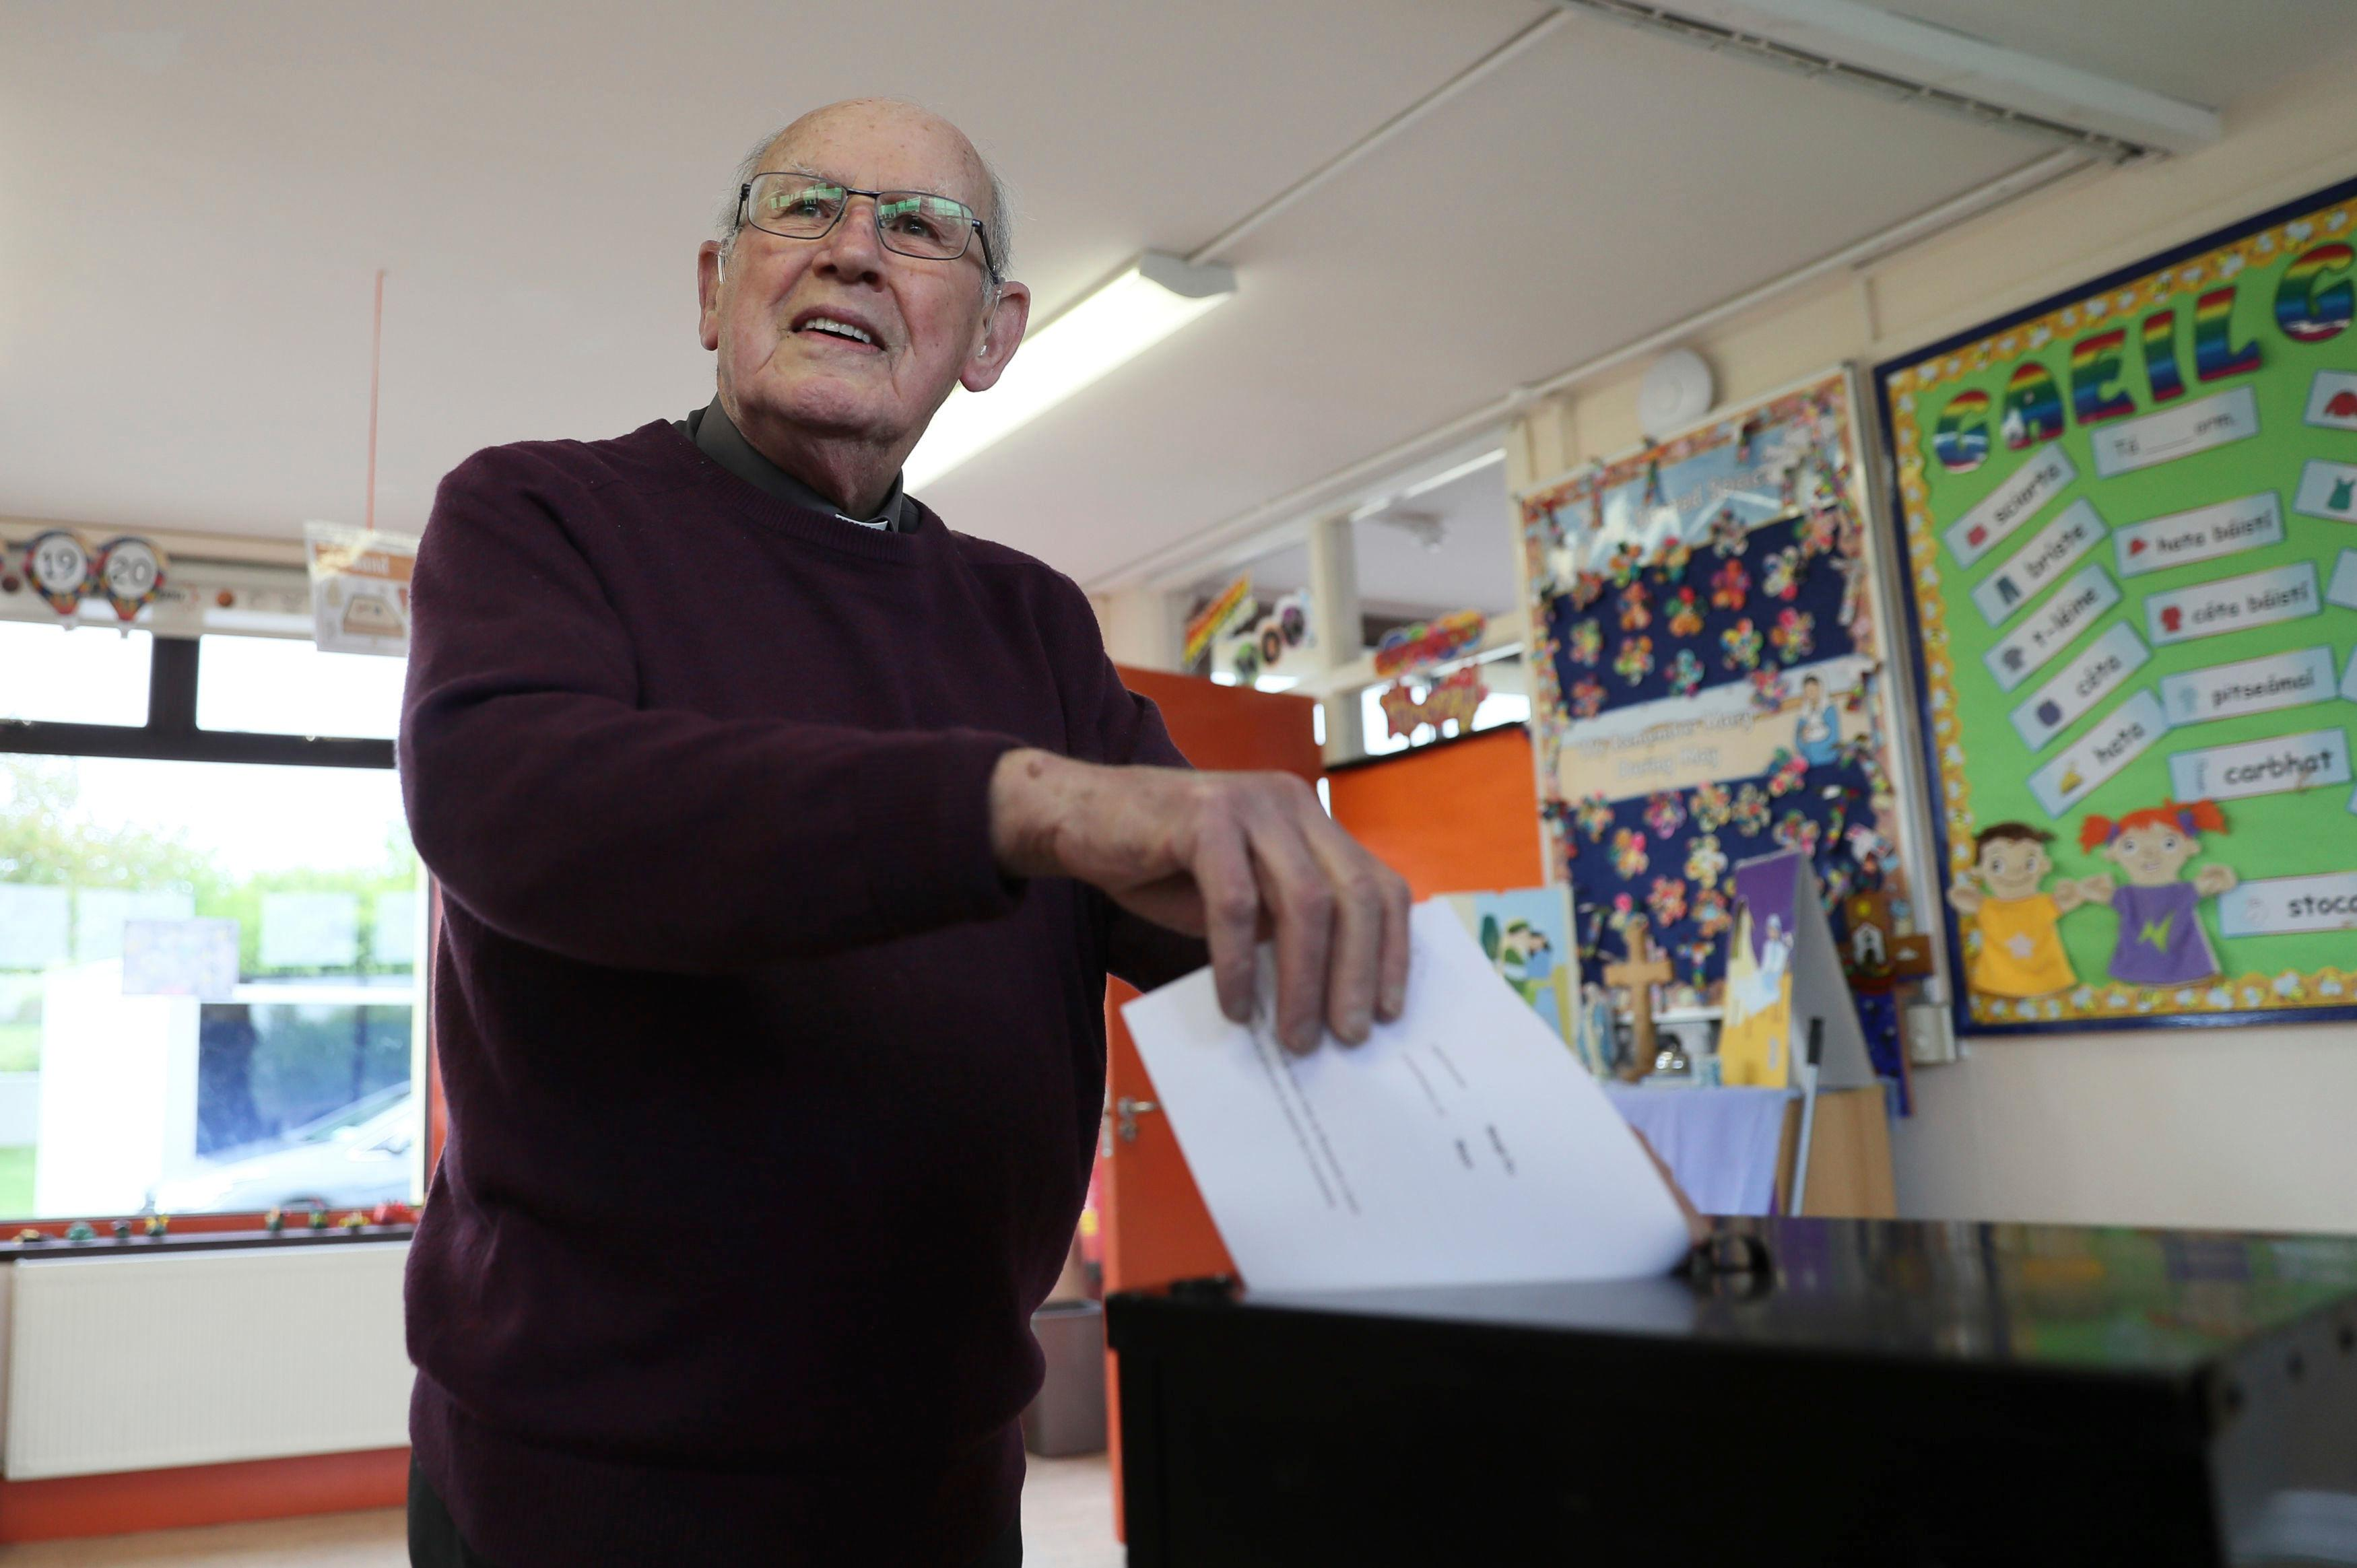 Father McDonagh casts his ballot for the referendum on the 8th Amendment of the Irish Constitution, in Mayo, Ireland, Friday May 25, 2018. The referendum on whether to repeal the country's strict anti-abortion law is being seen by anti-abortion activists as a last-ditch stand against what they view as a European norm of abortion-on-demand, while for pro-abortion rights advocates, it is a fundamental moment for declaring an Irish woman's right to choose. (Brian Lawless/PA via AP)